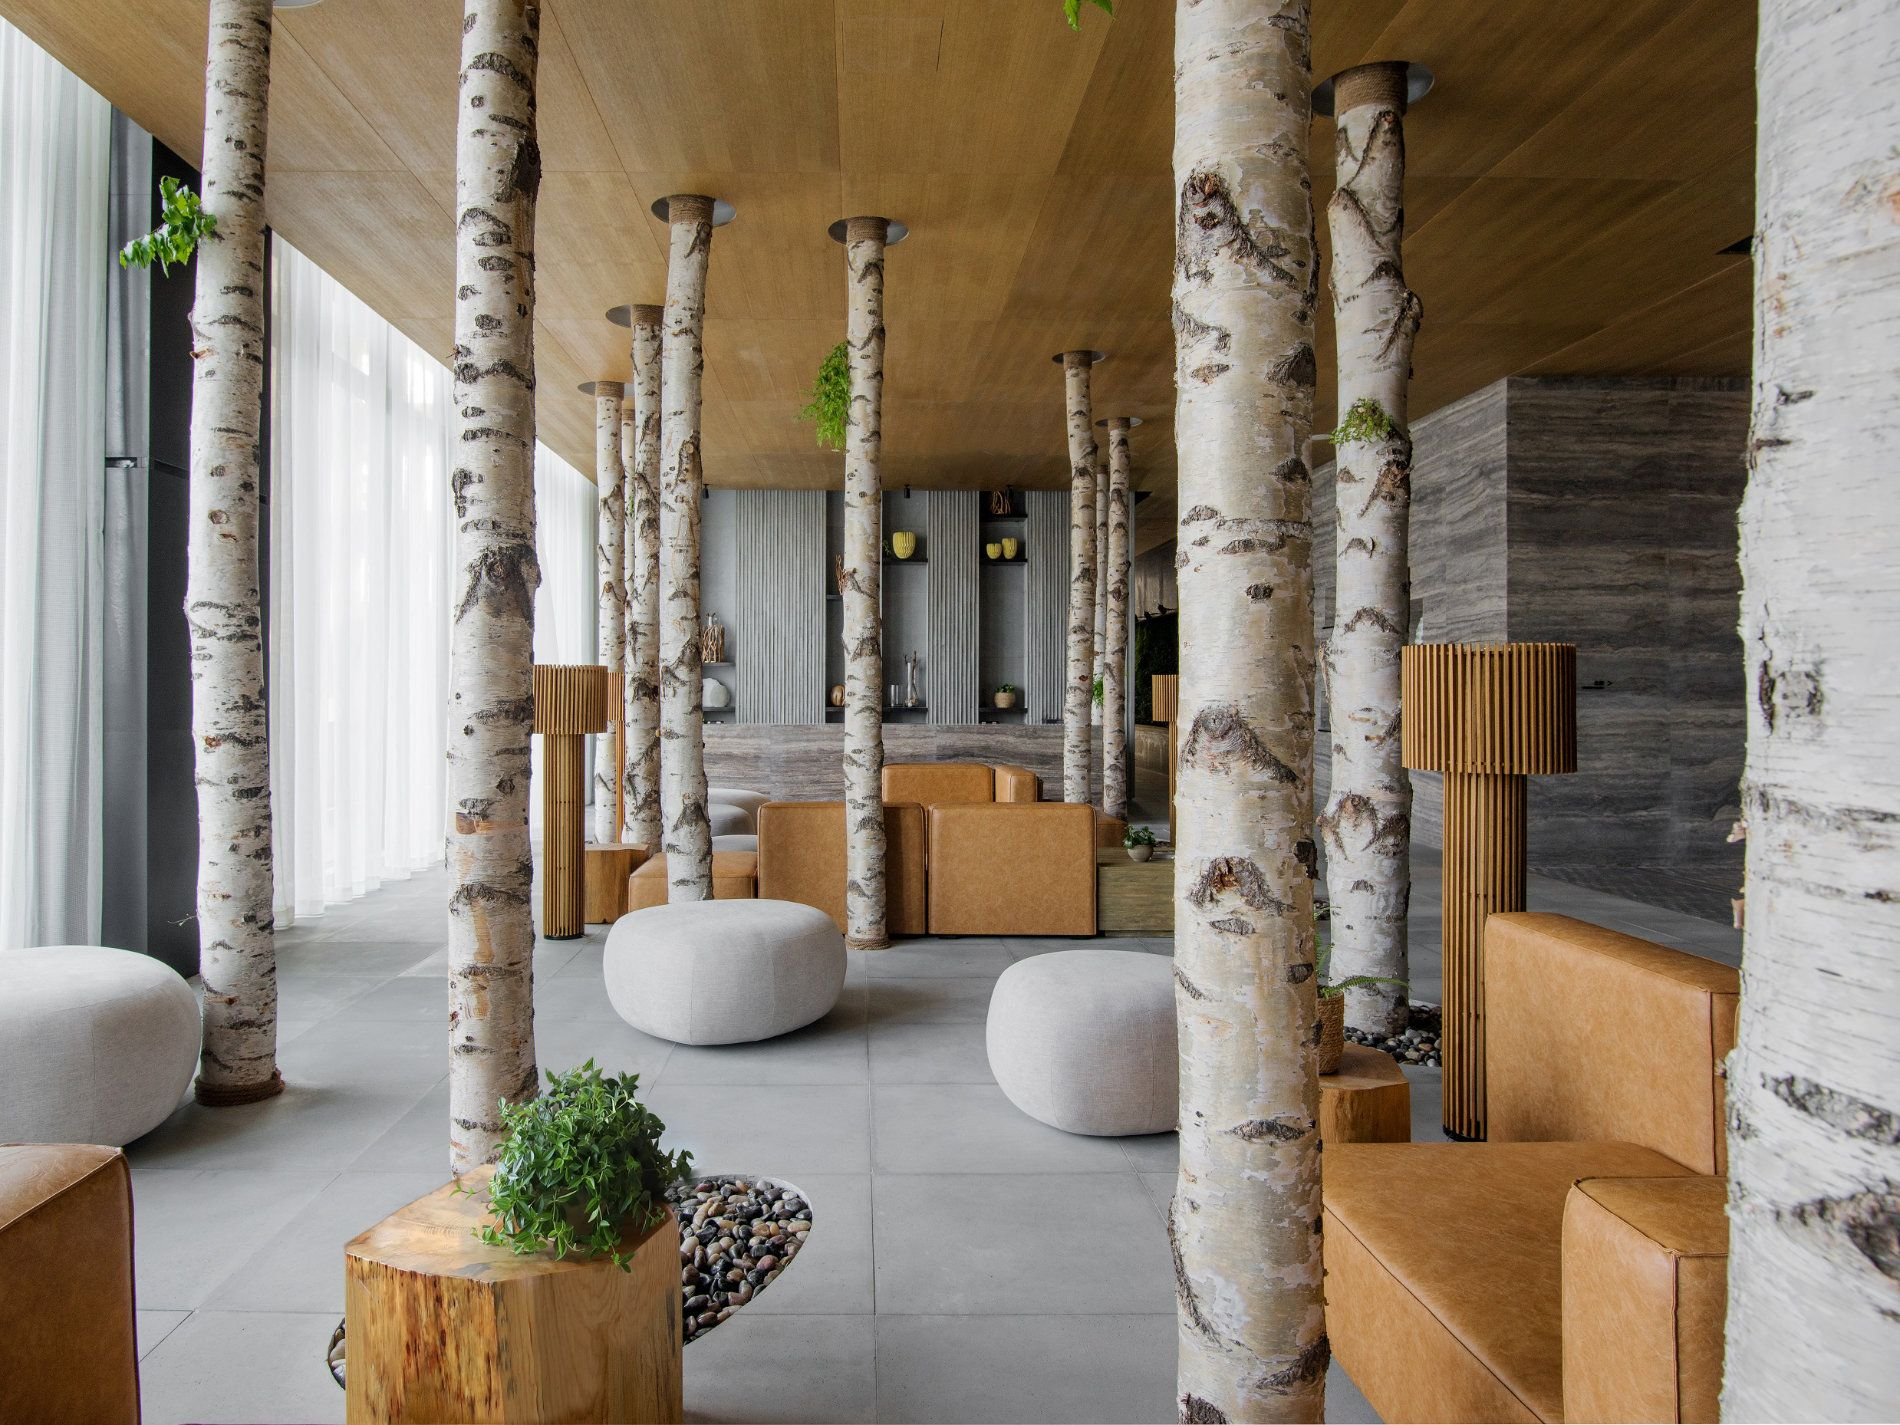 6 Nature-Inspired Hotels and Resorts with Elements of Biophilic Design